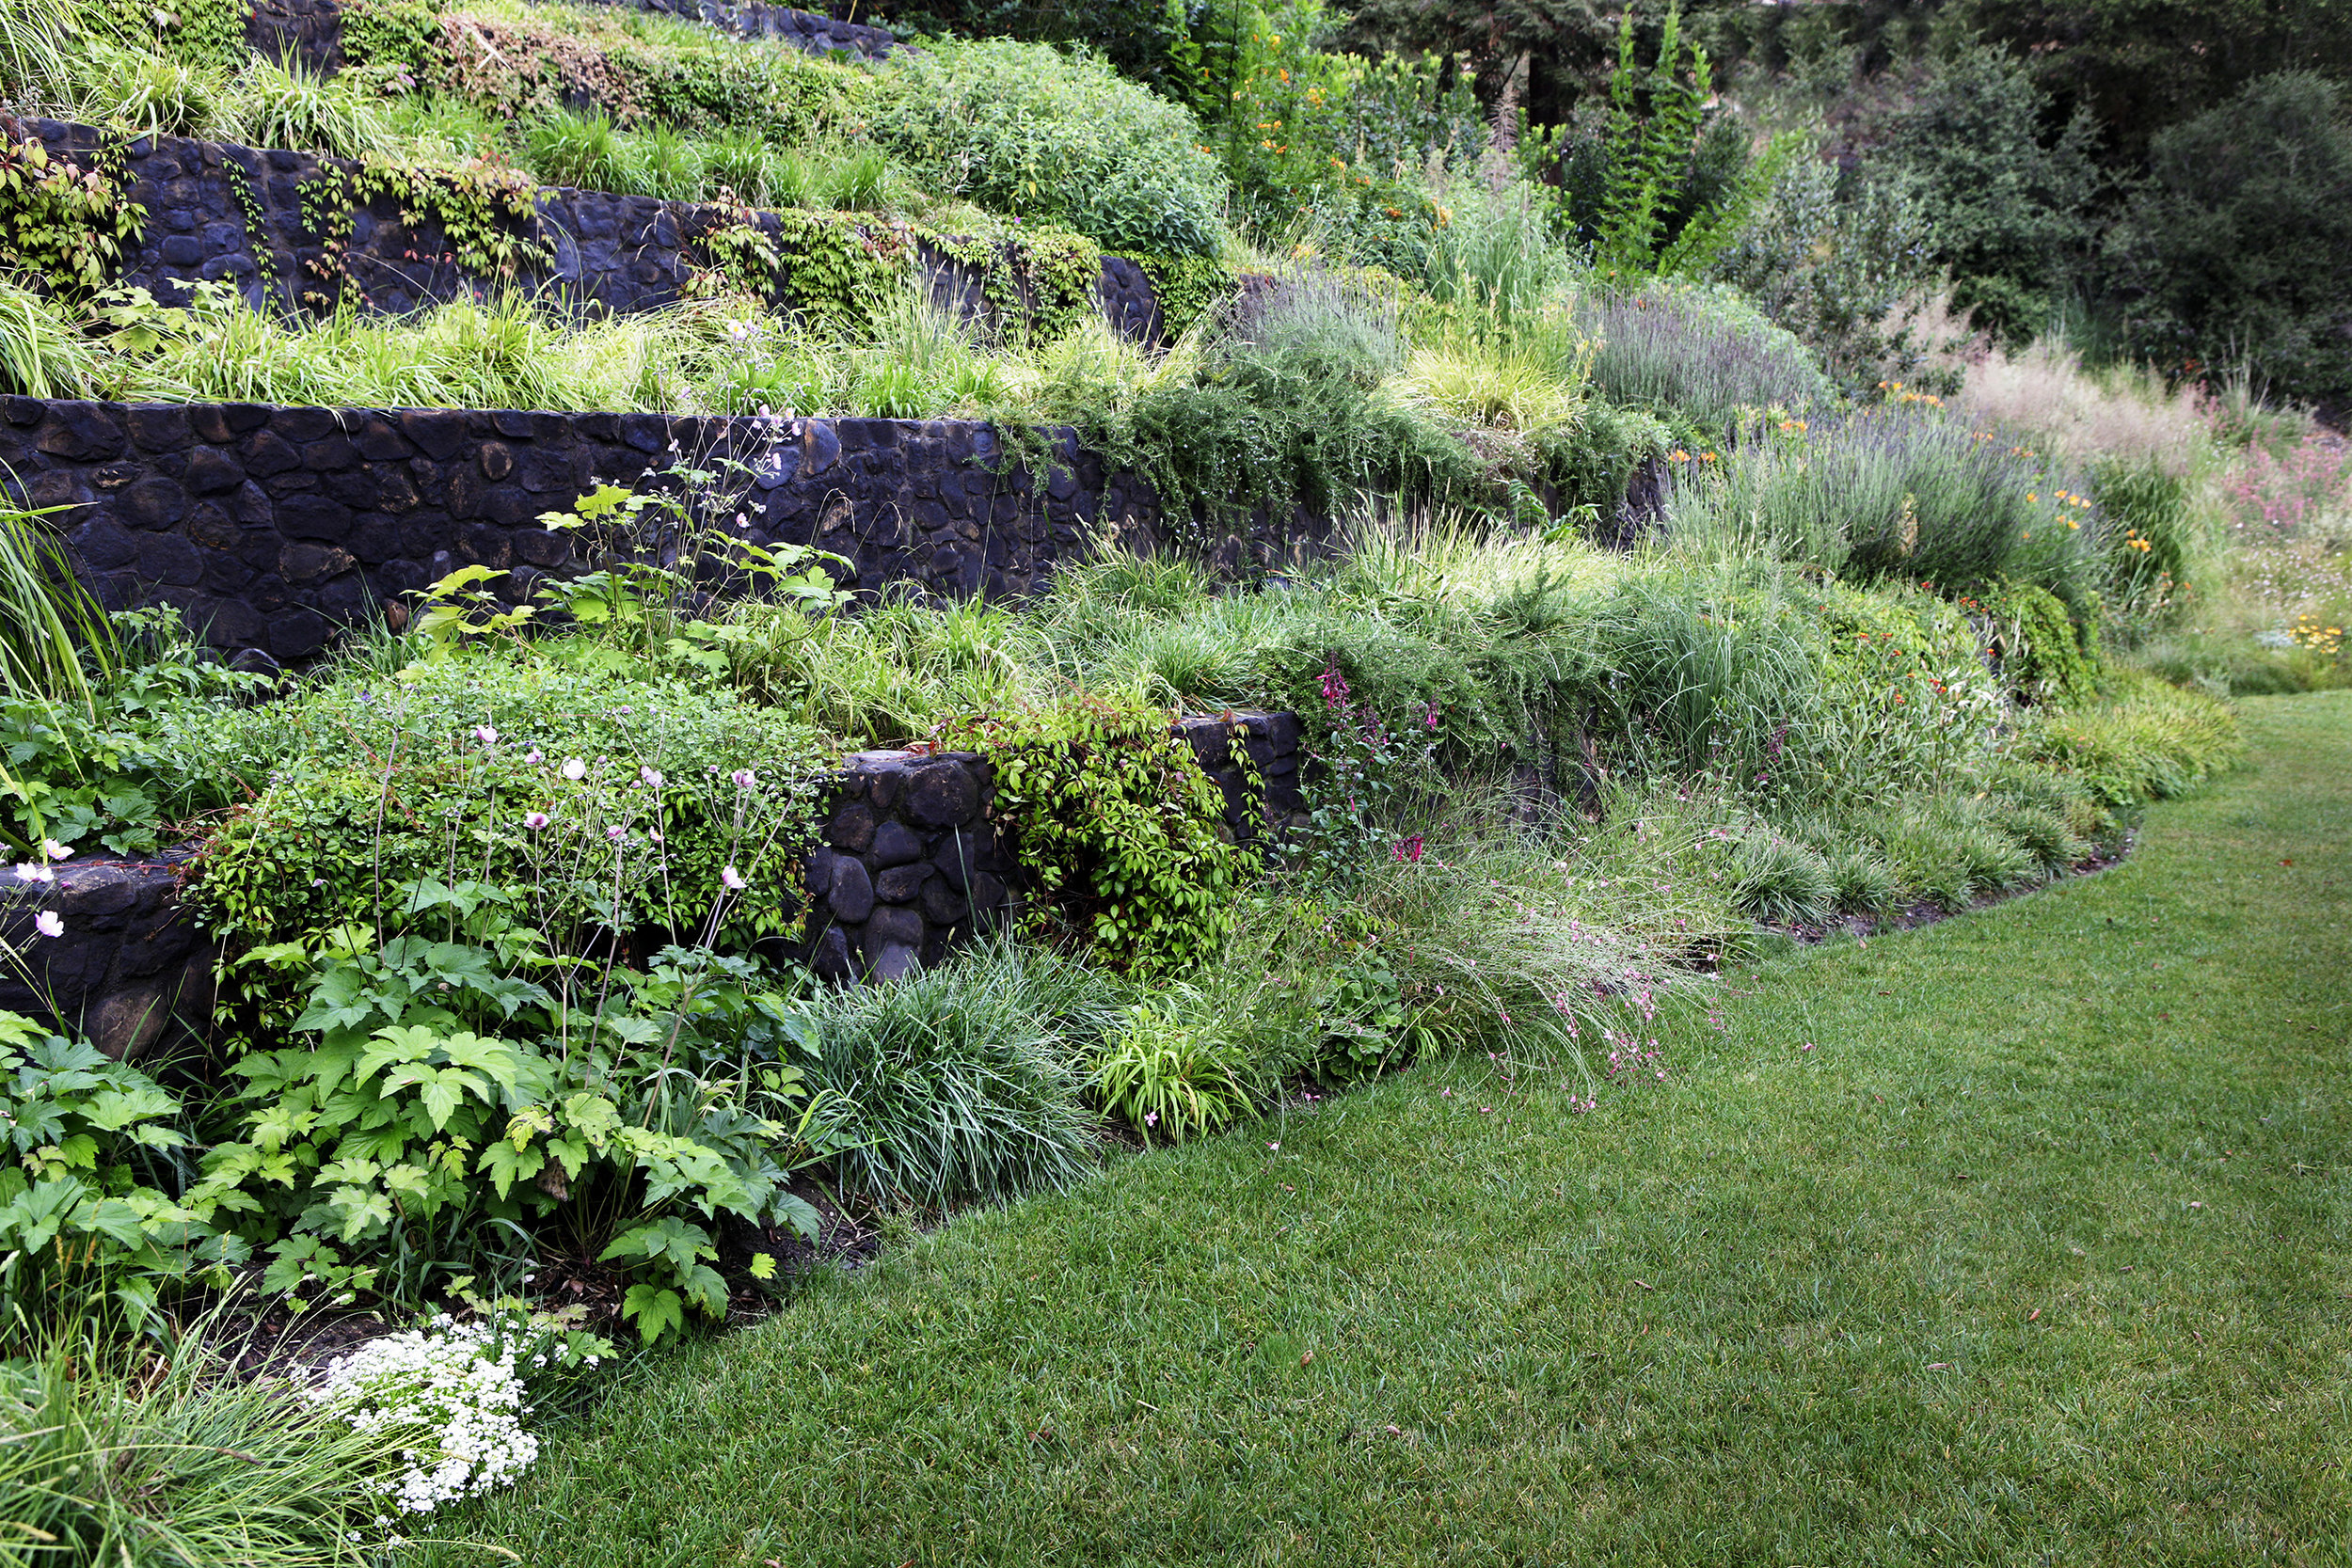 Terraced shade garden with stone retaining walls - Topanga Canyon - Los Angeles garden design by Campion Walker Landscapes